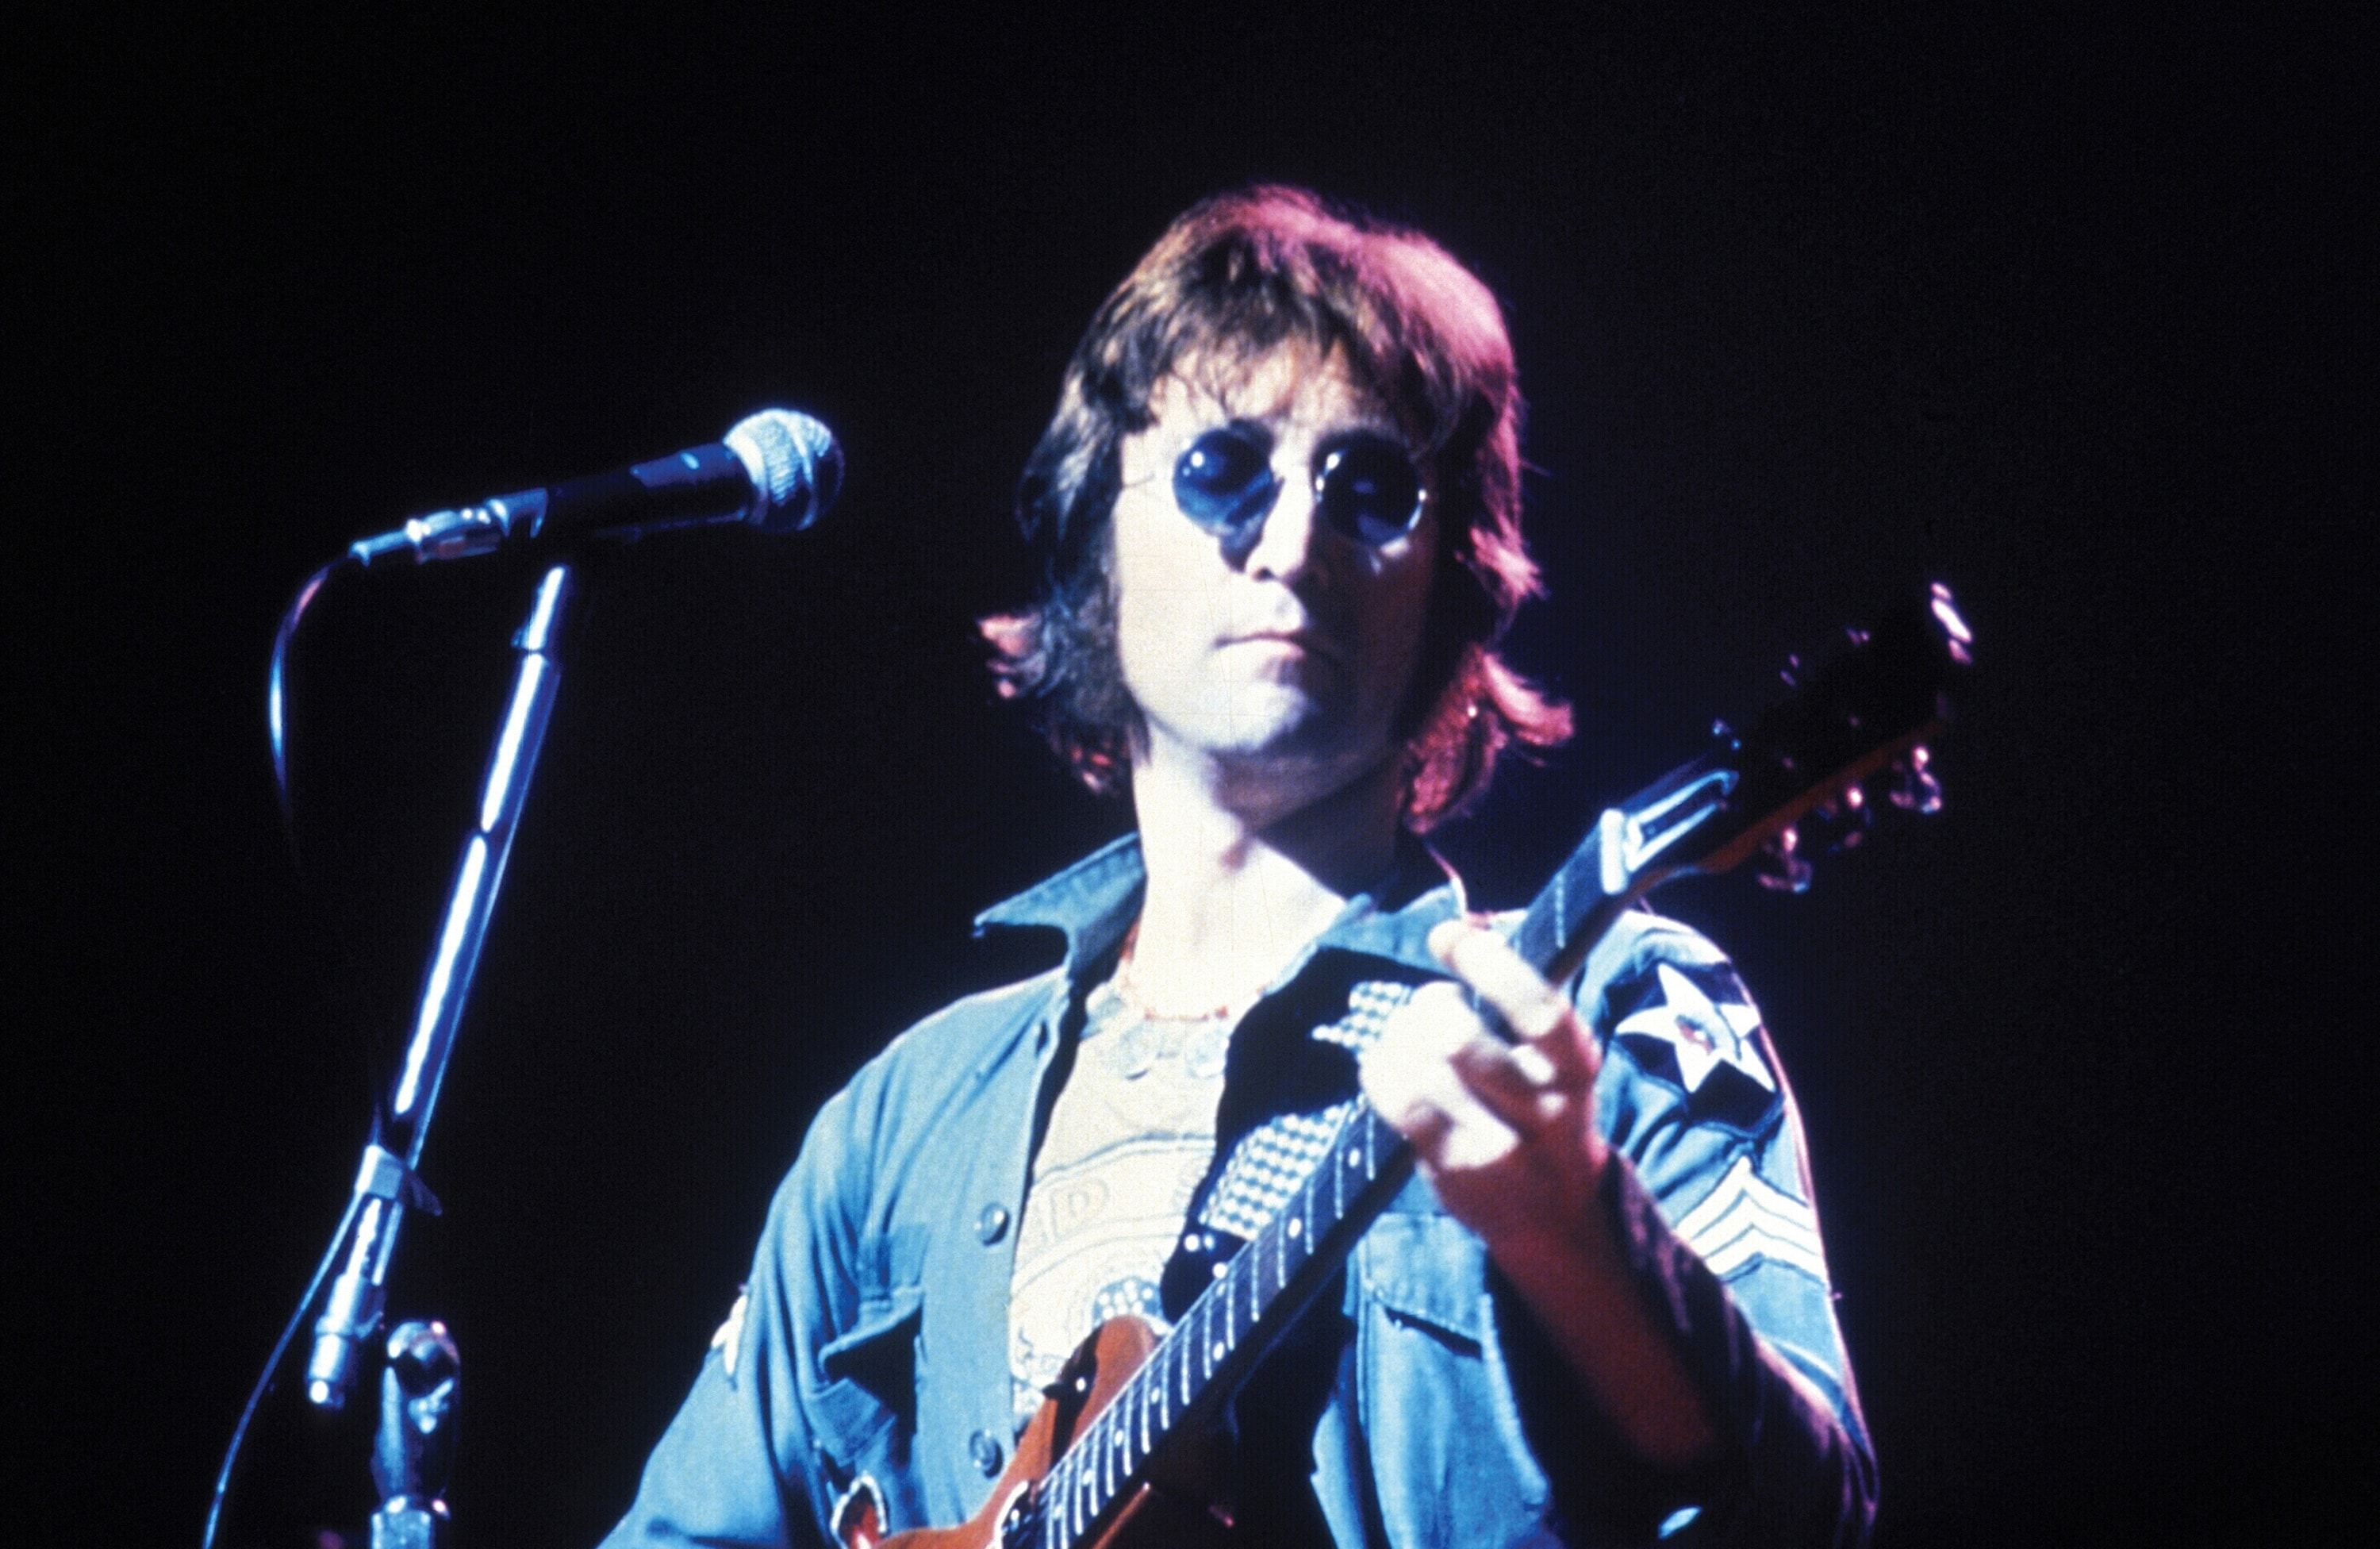 Celebrating John Lennon's birthday, these are his 10 best songs with The Beatles. (Photo: WENN)